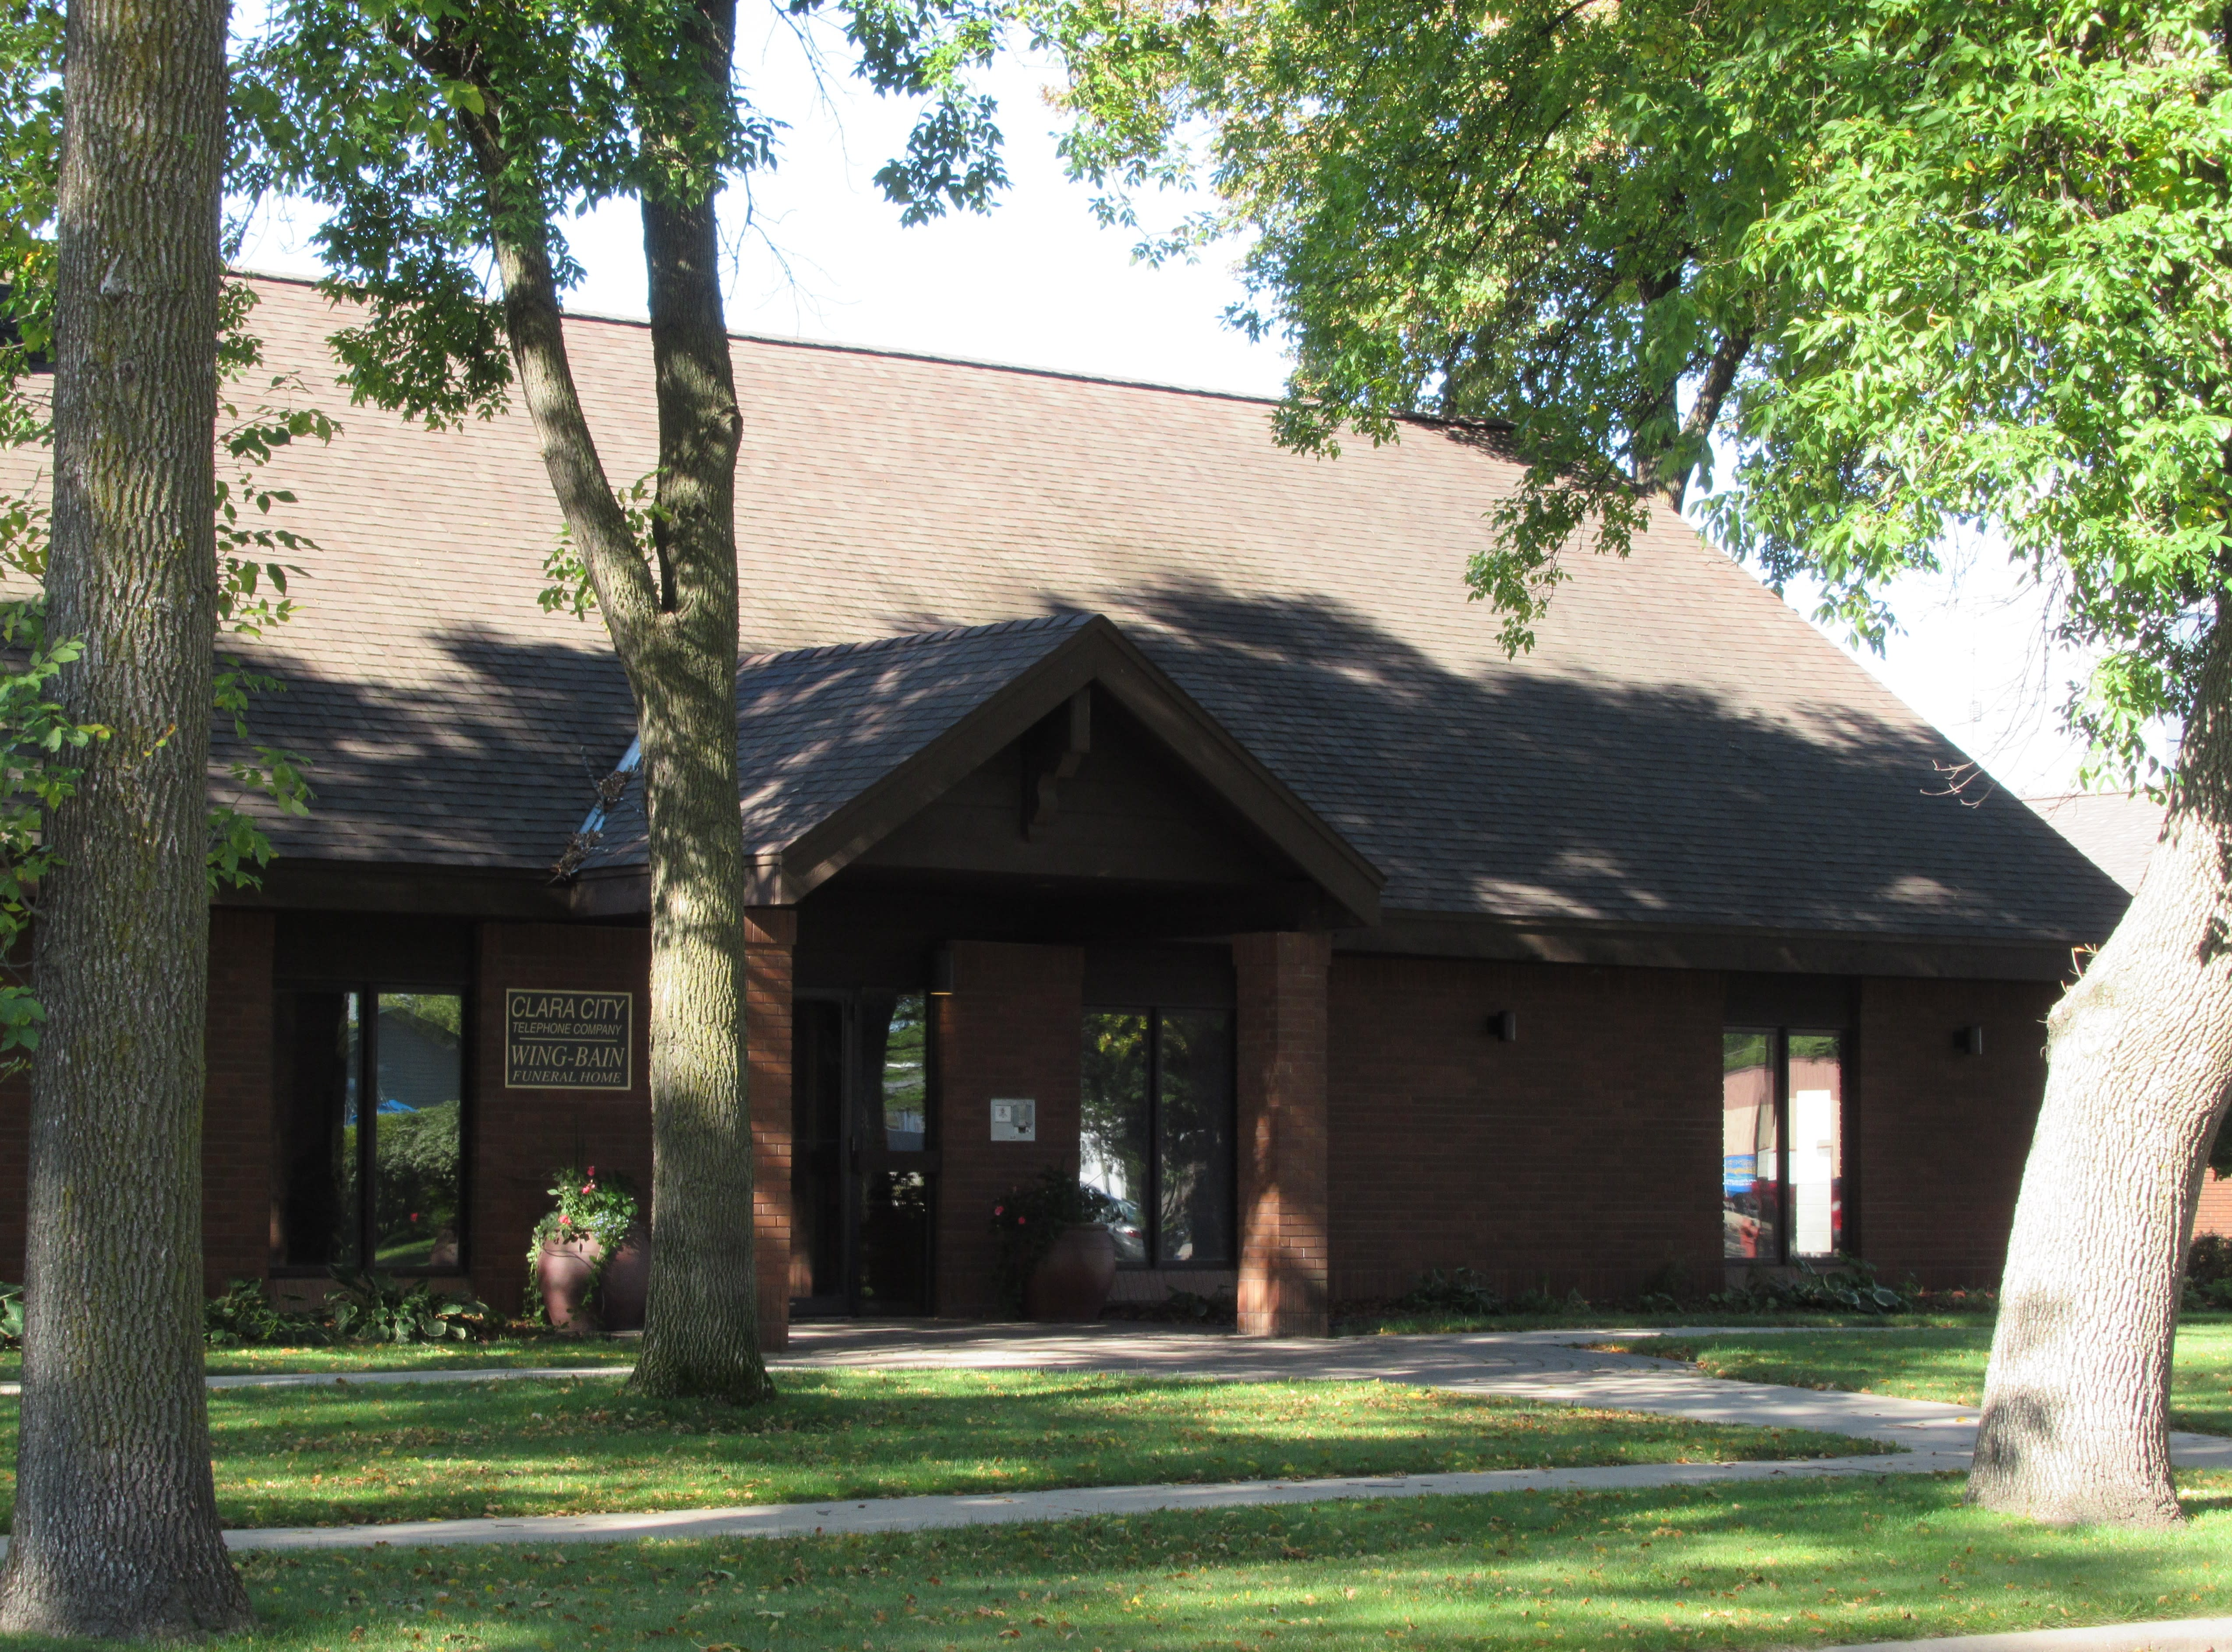 Wing Bain Funeral Home Montevideo Mn